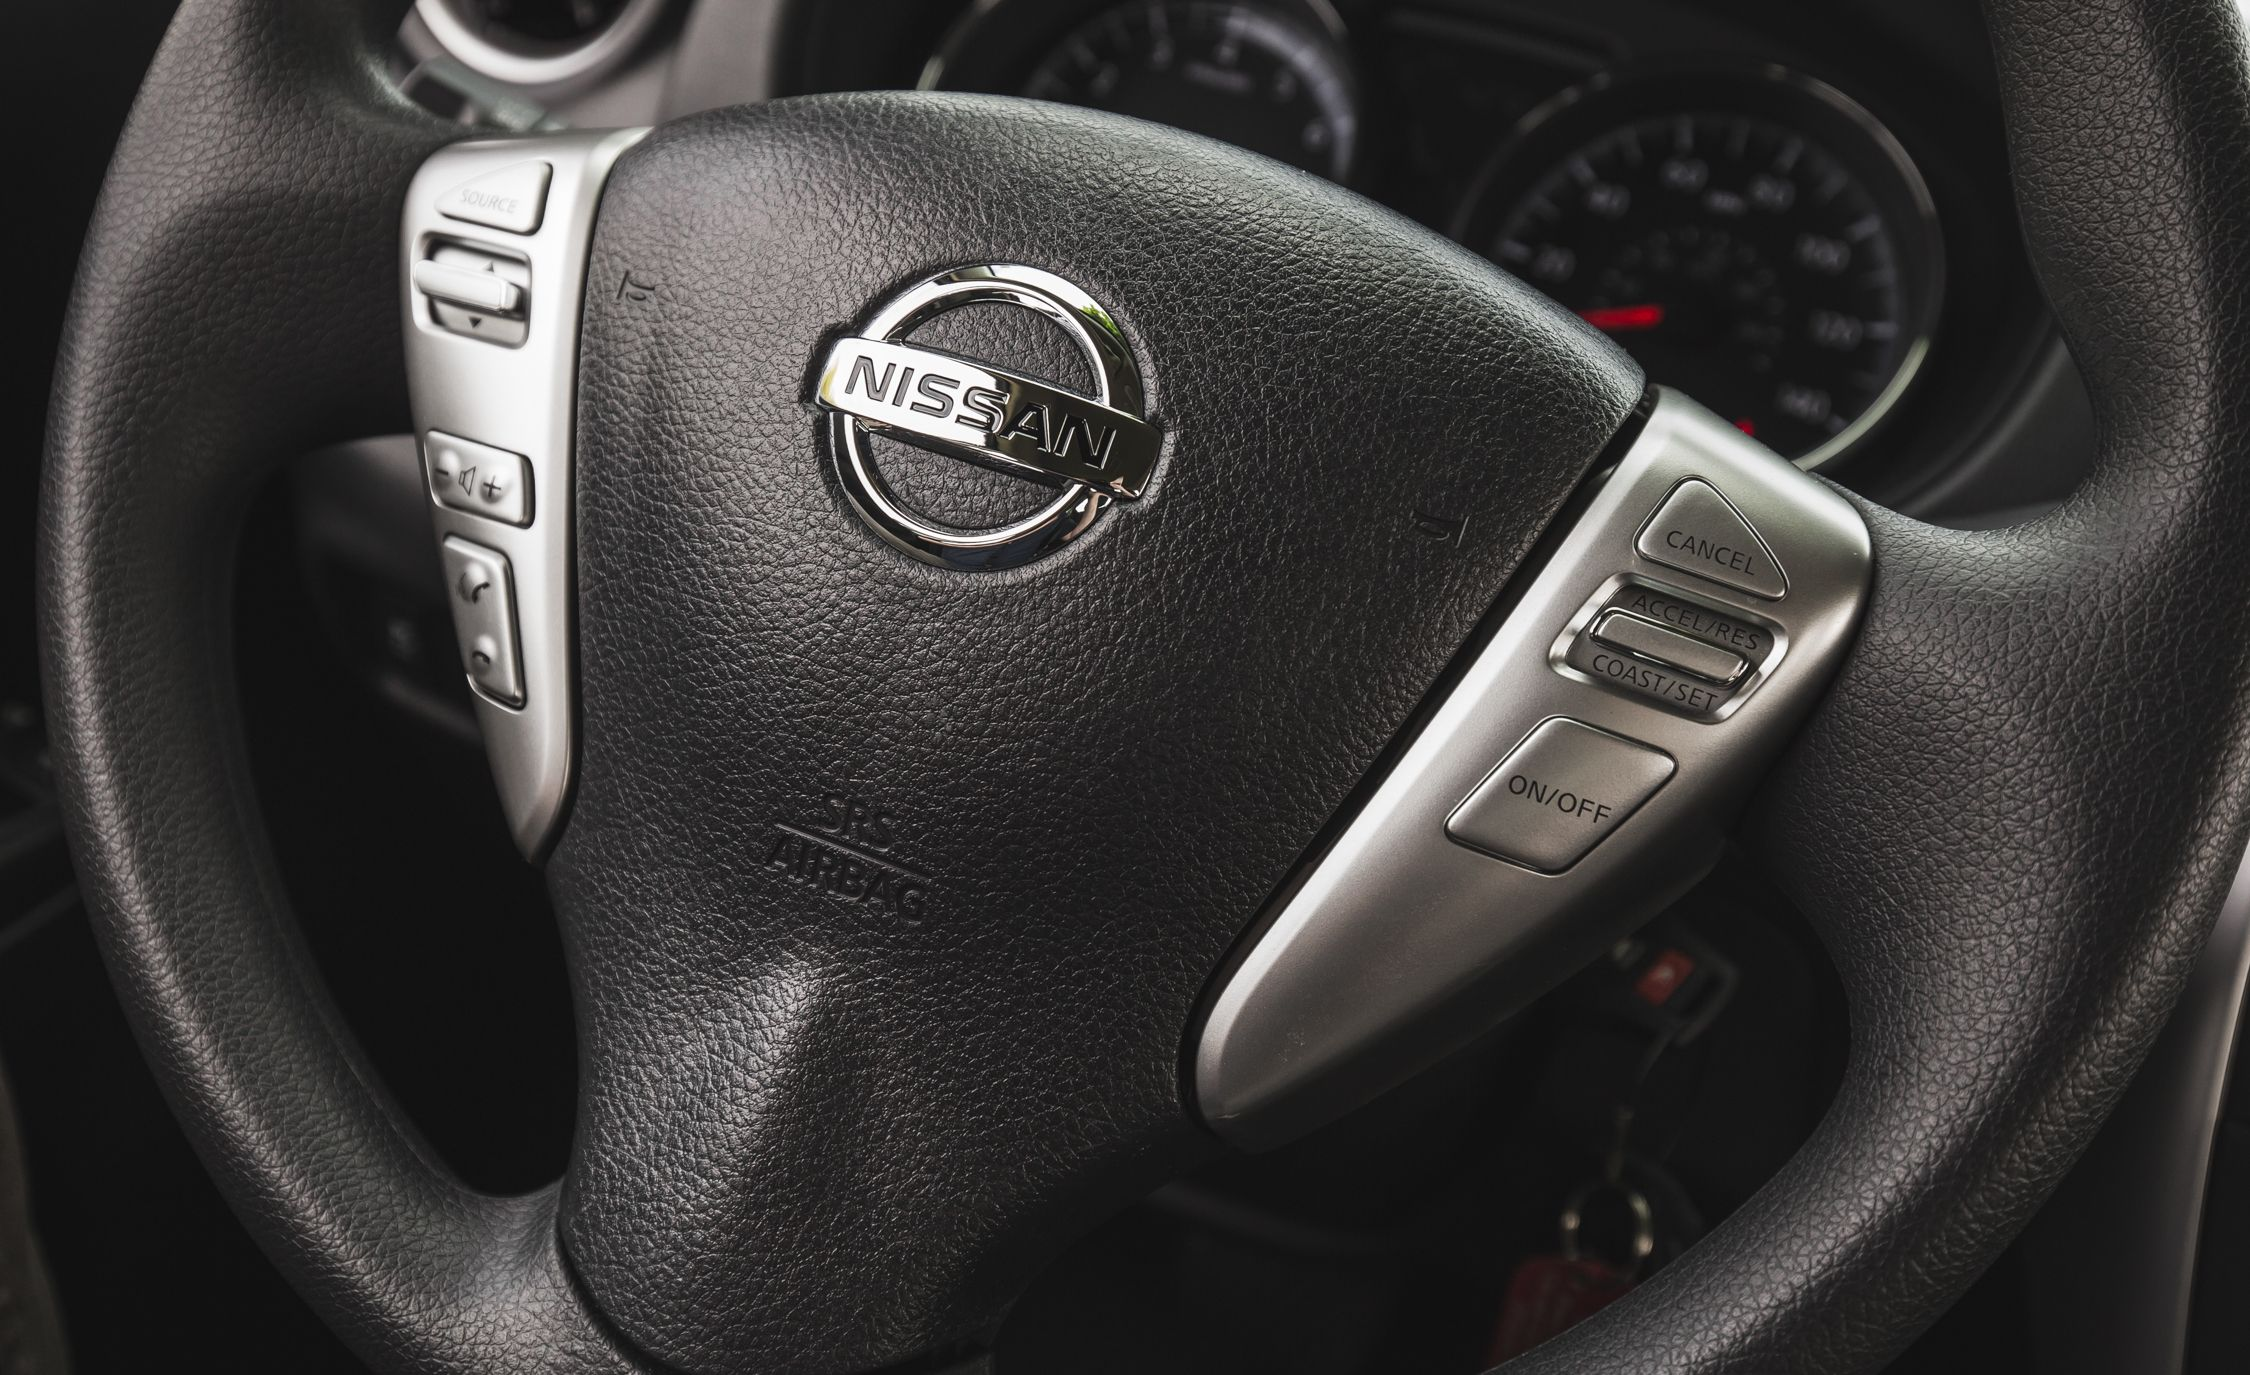 Nissan Versa Steering Wheel Diagram Electrical Wiring 2012 Fuse Box Reviews Price Photos And Specs Car